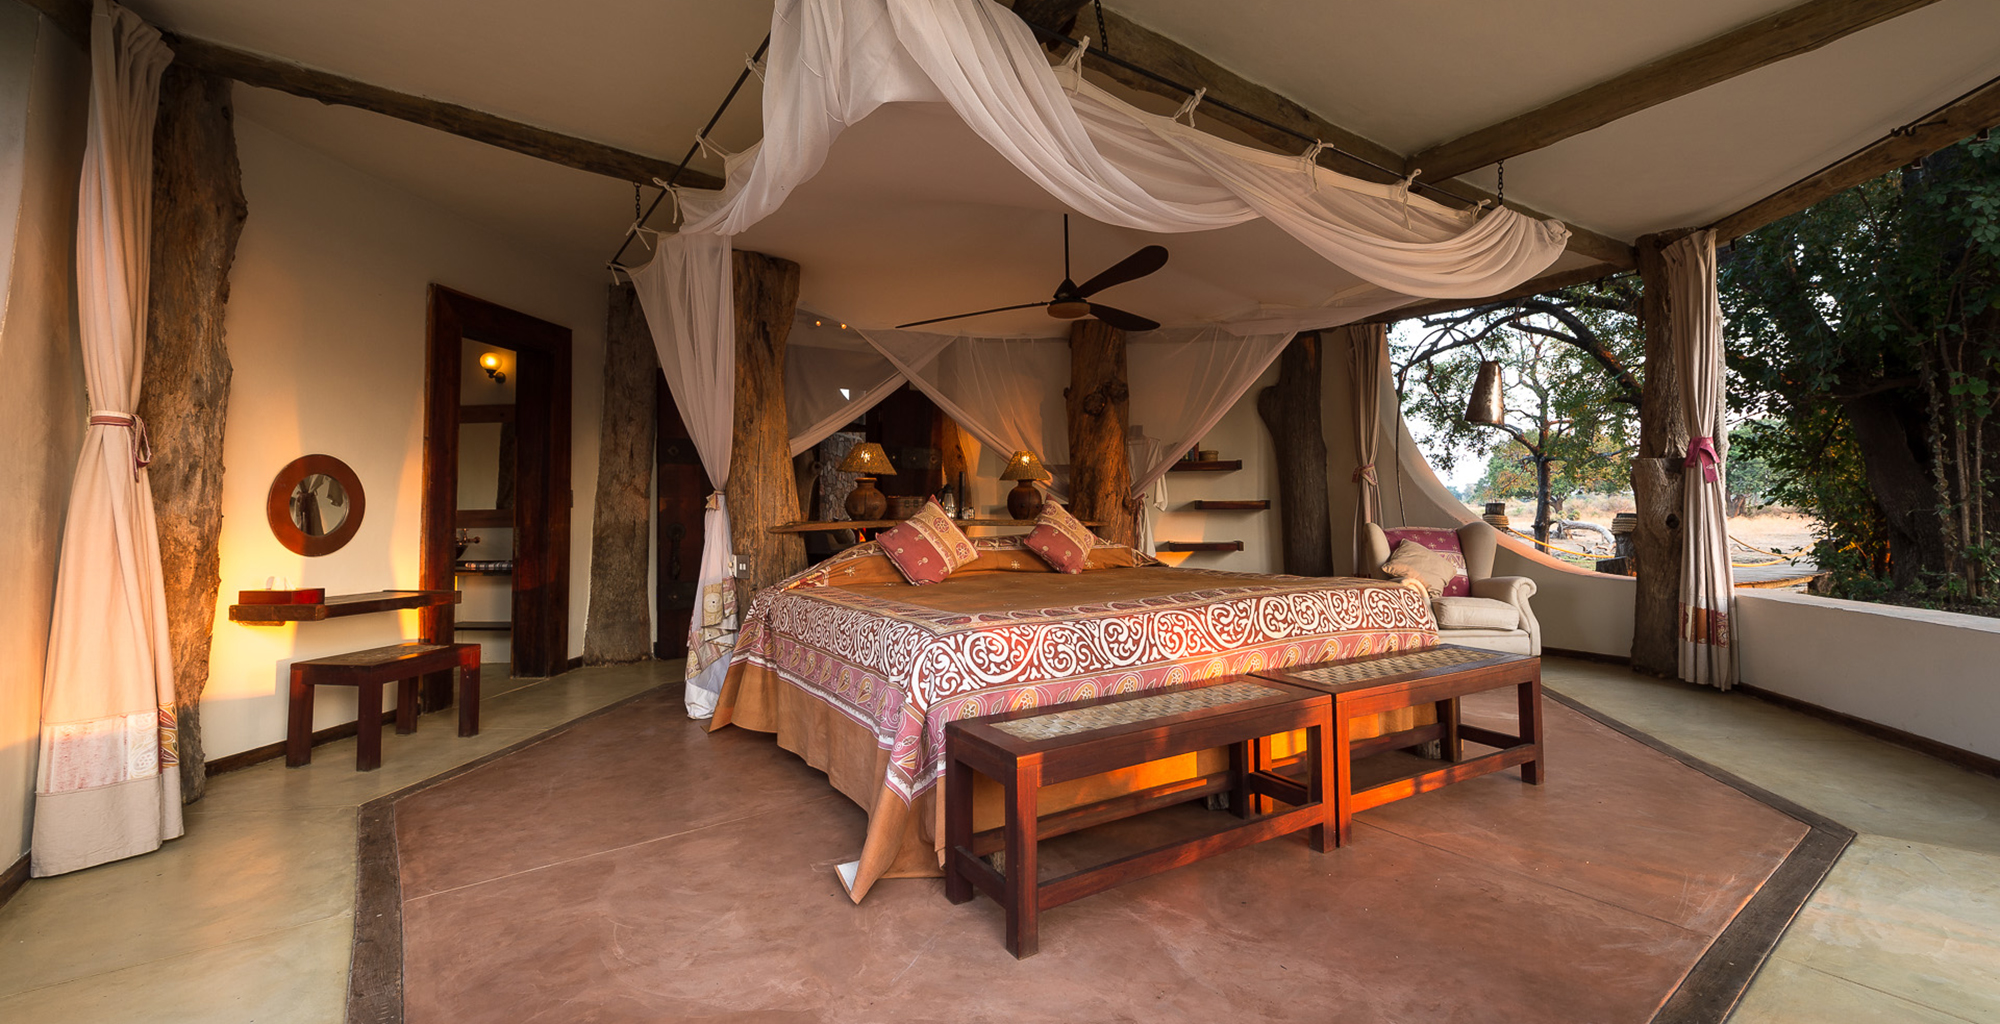 Zambia-Luangwa-Safari-House-Bedroom